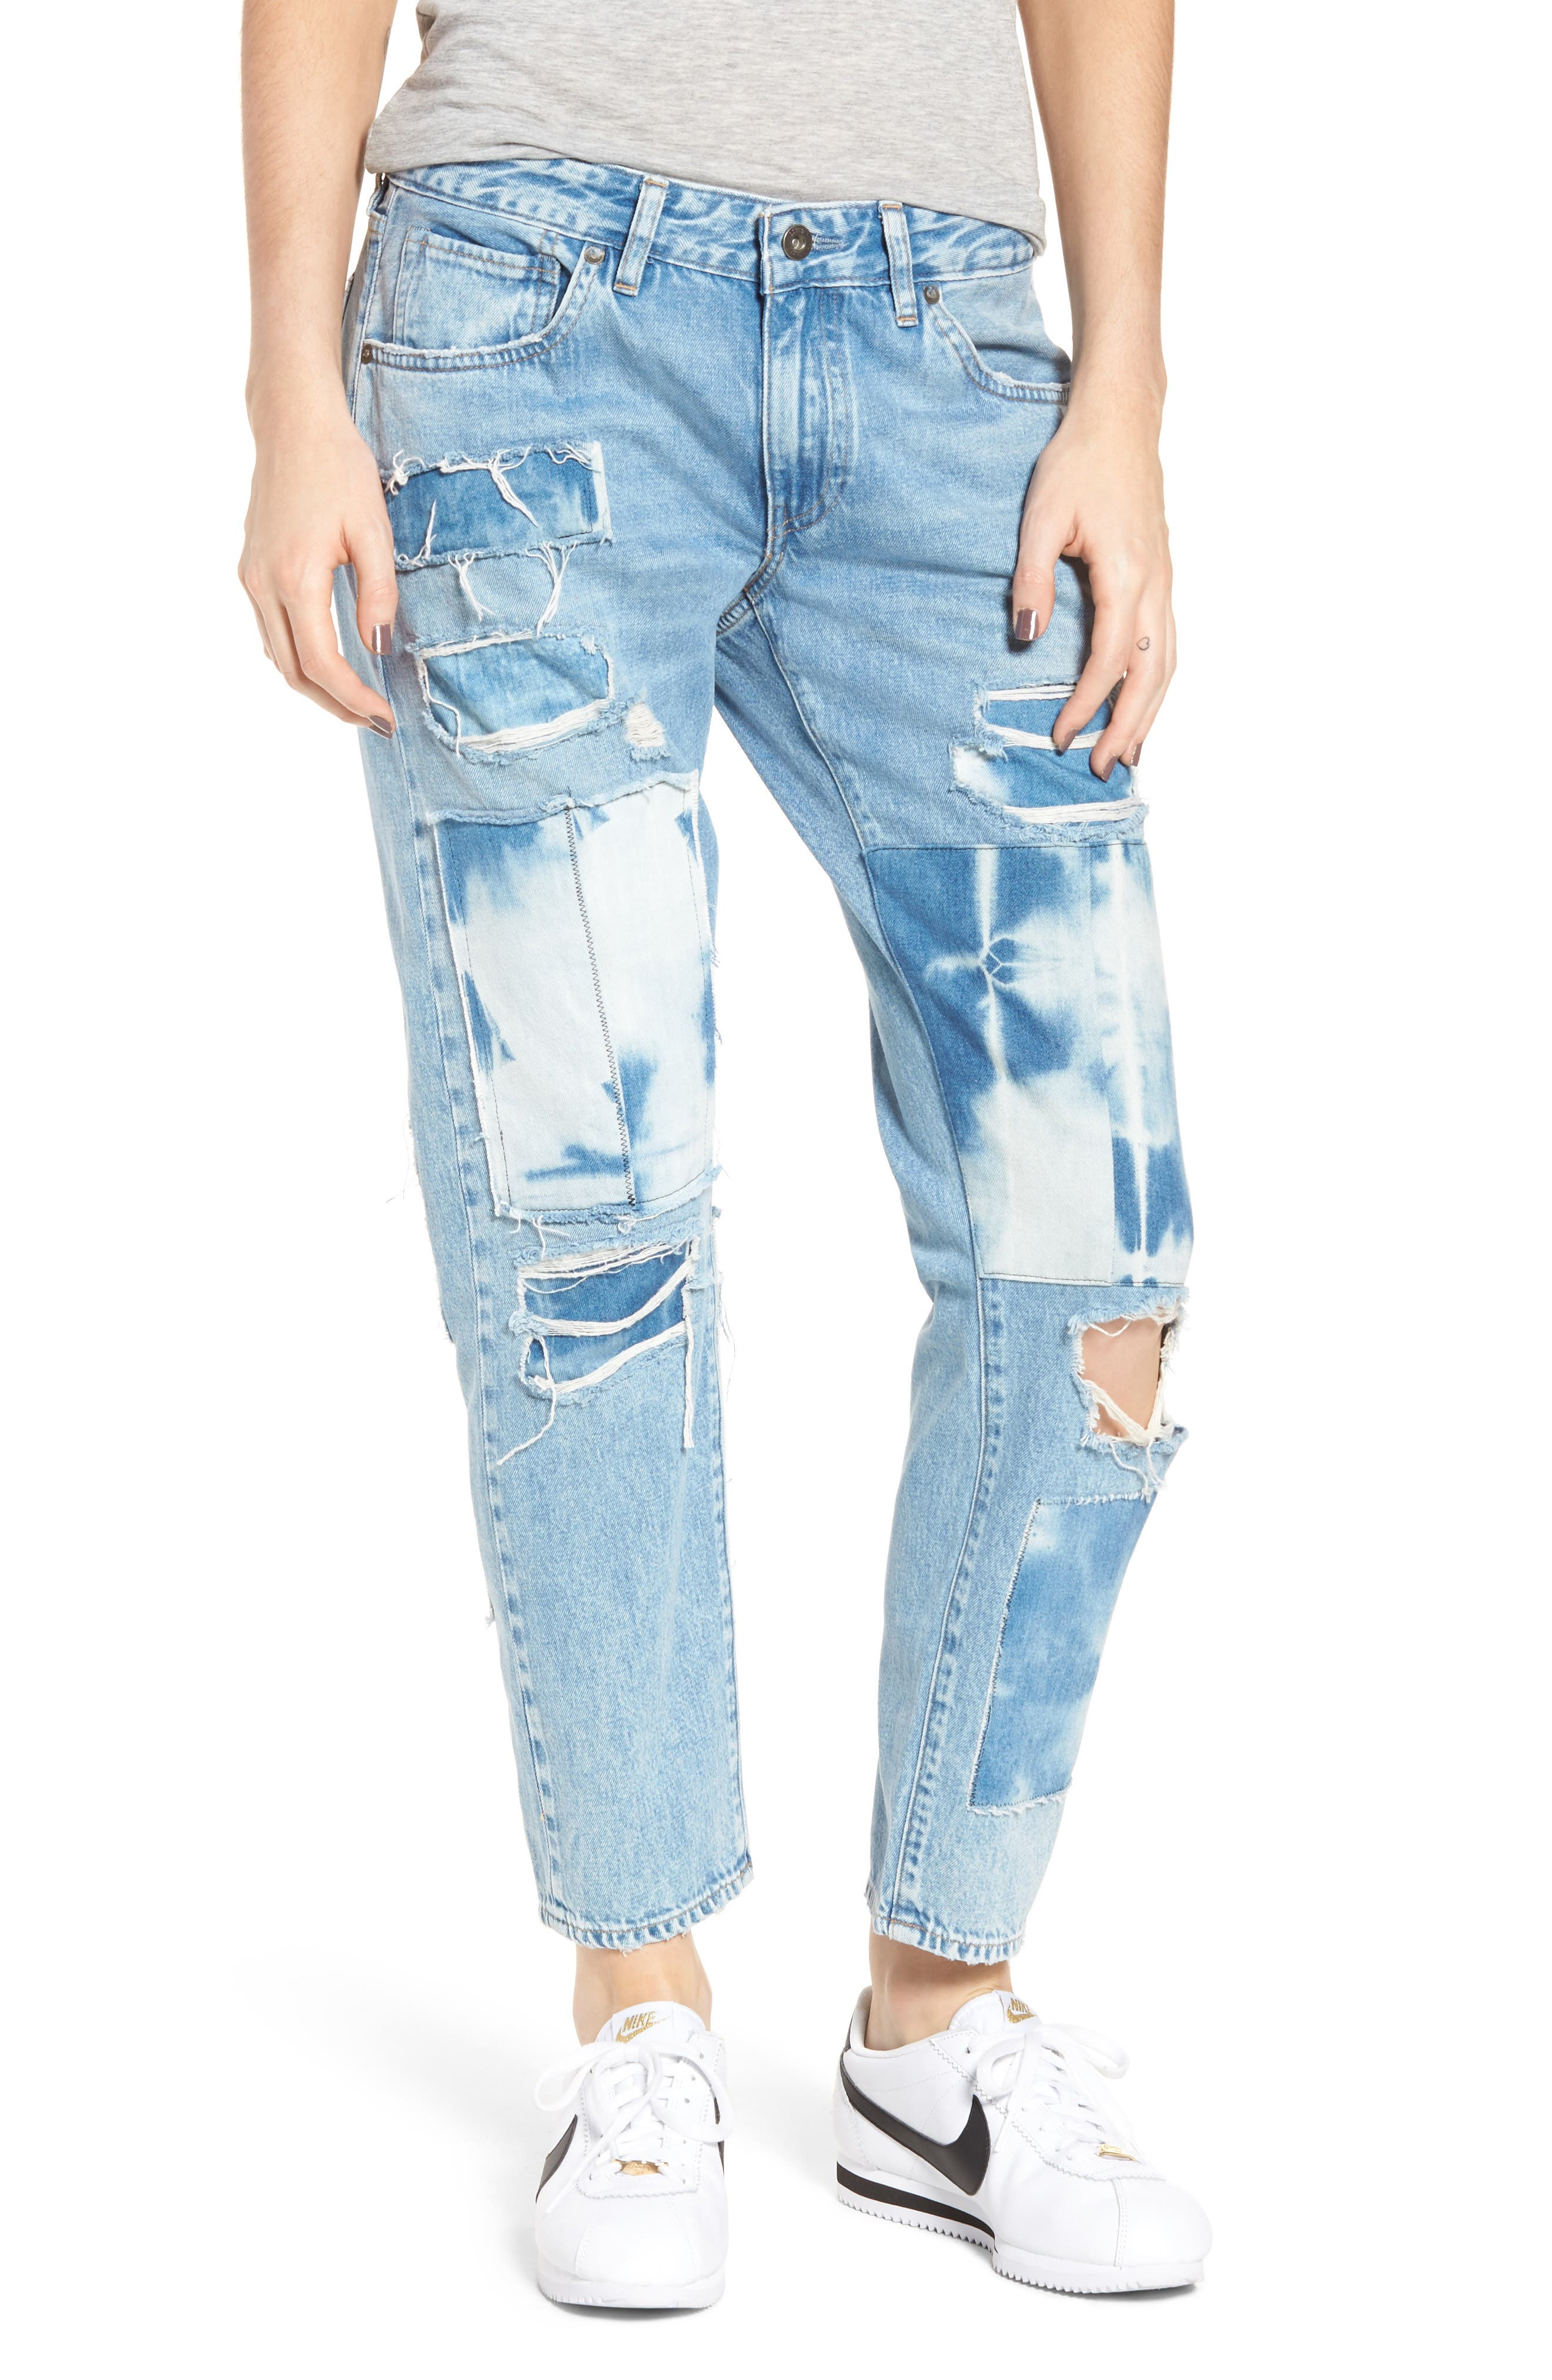 Crush Tapered Jeans,                         Main,                         color, Tidal Wave